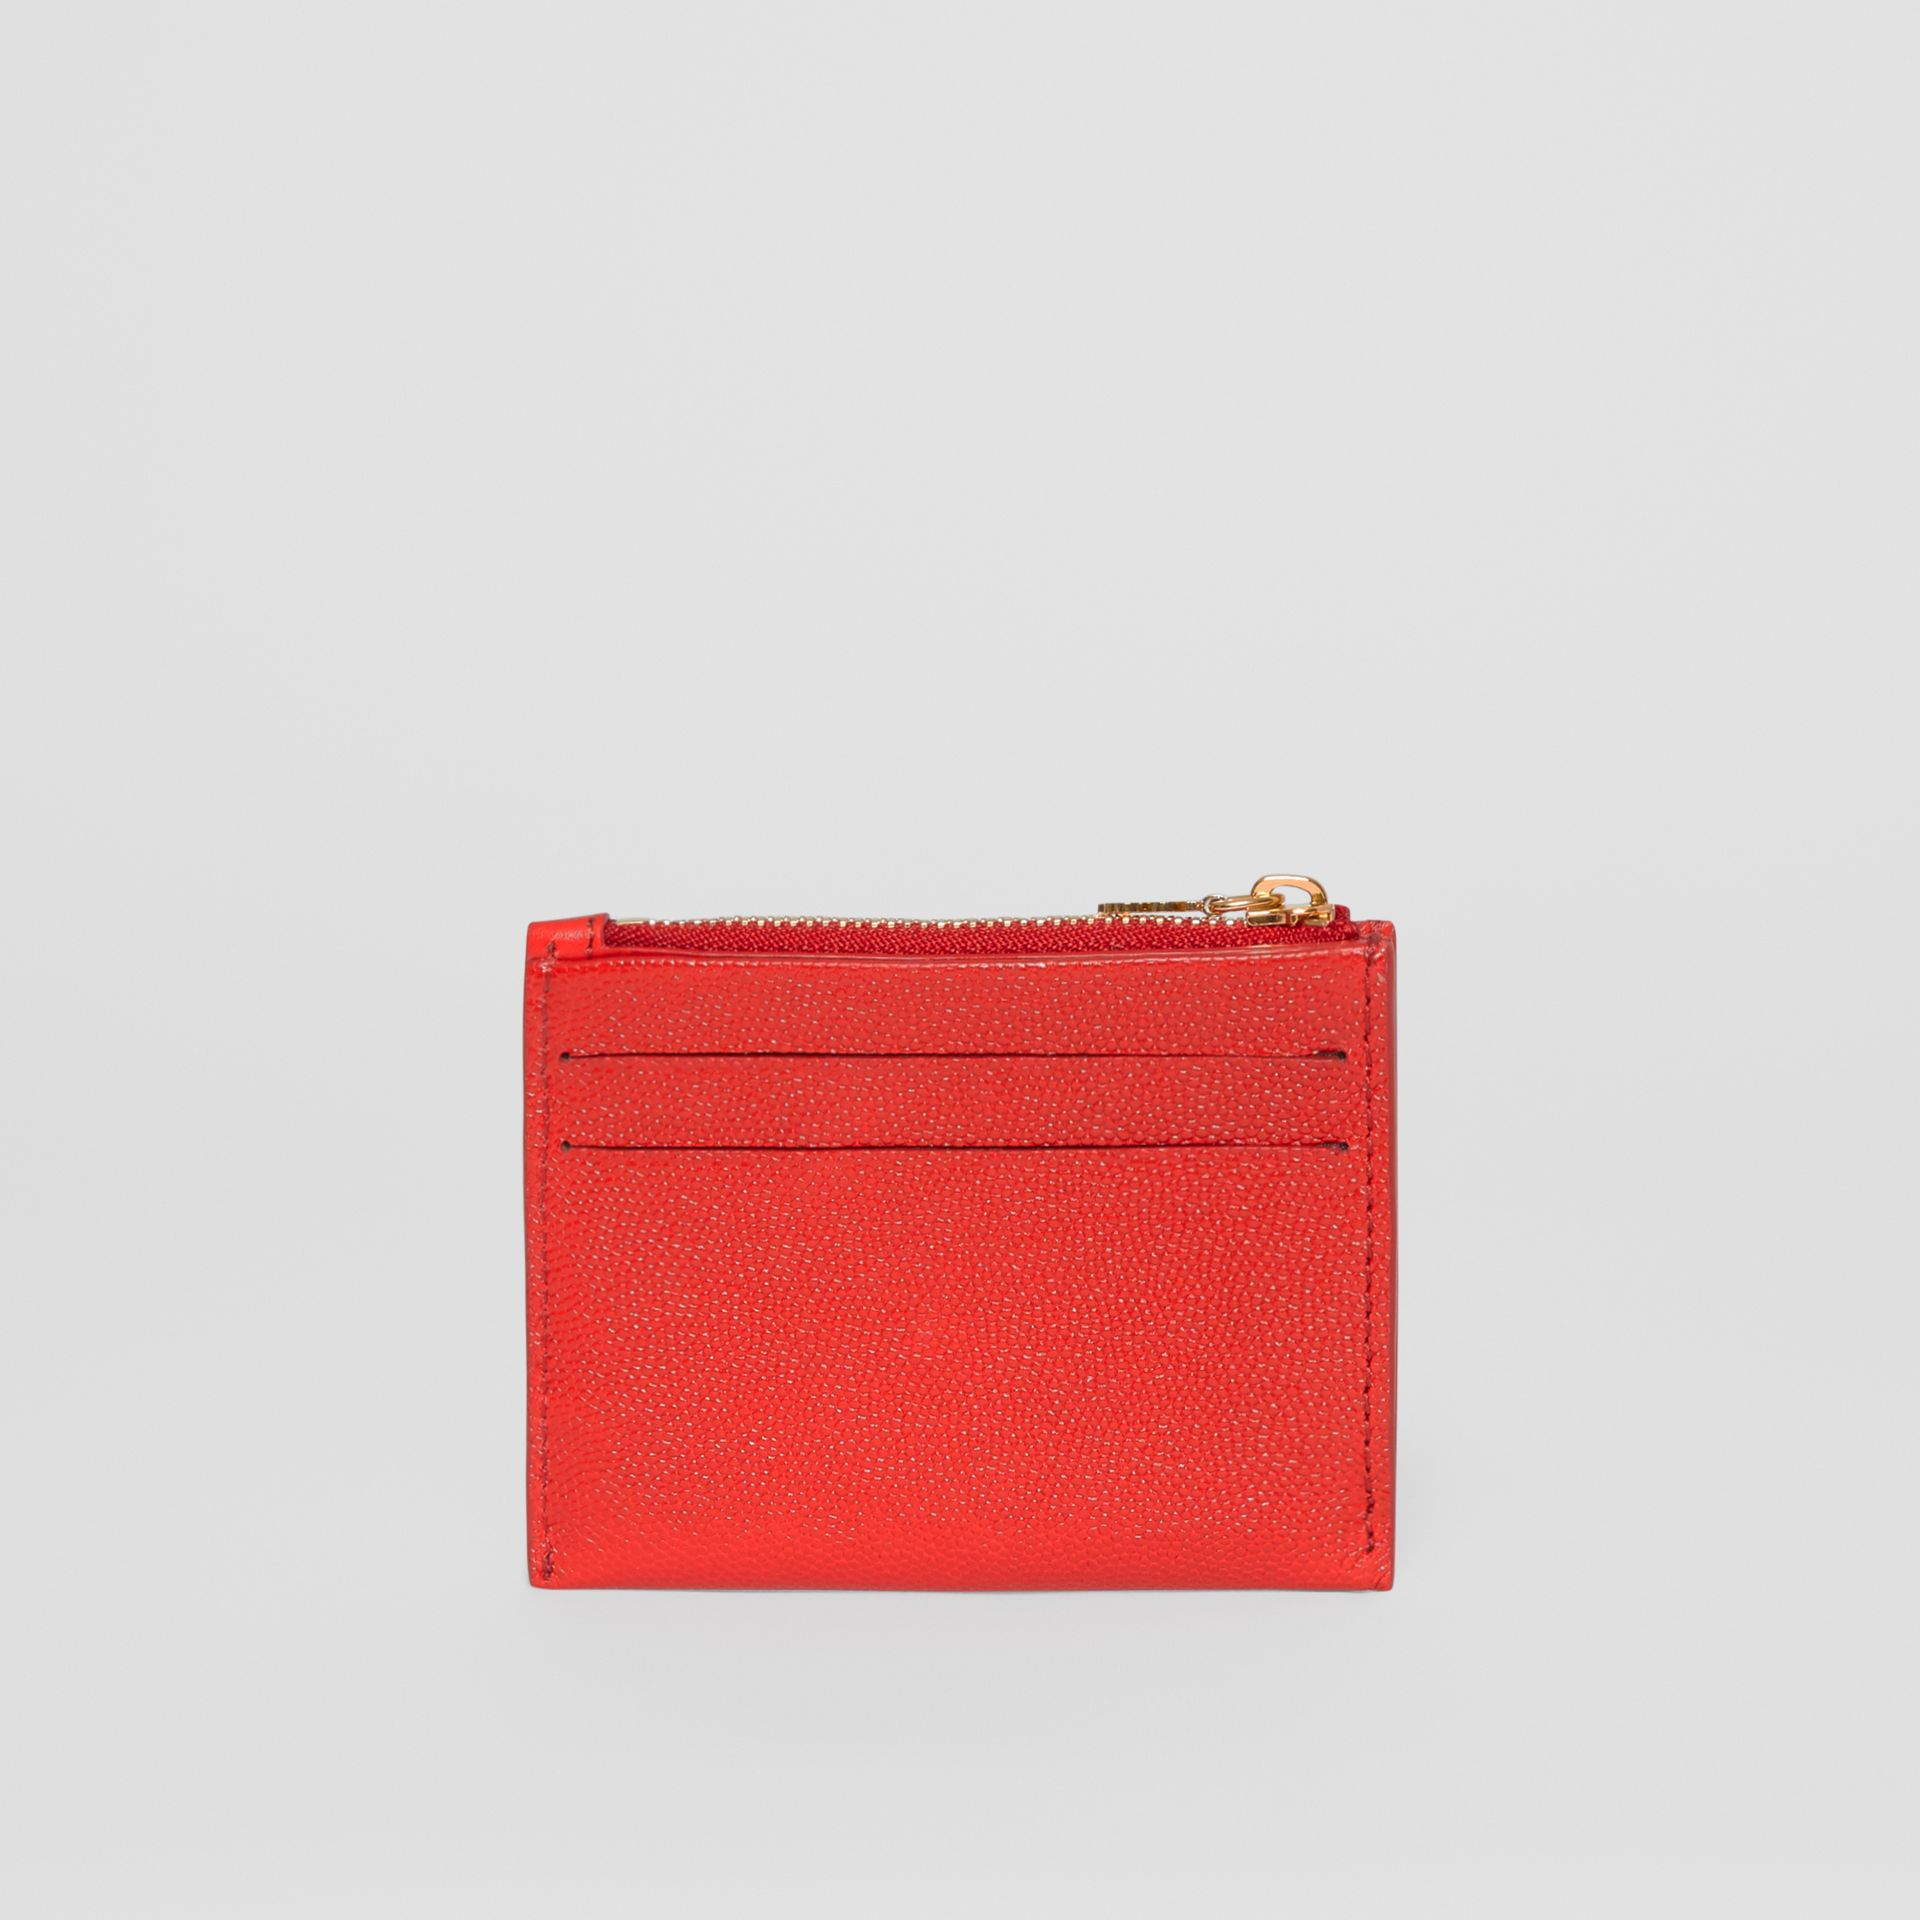 Monogram Motif Grainy Leather Zip Card Case in Bright Red - Women | Burberry Australia - gallery image 4